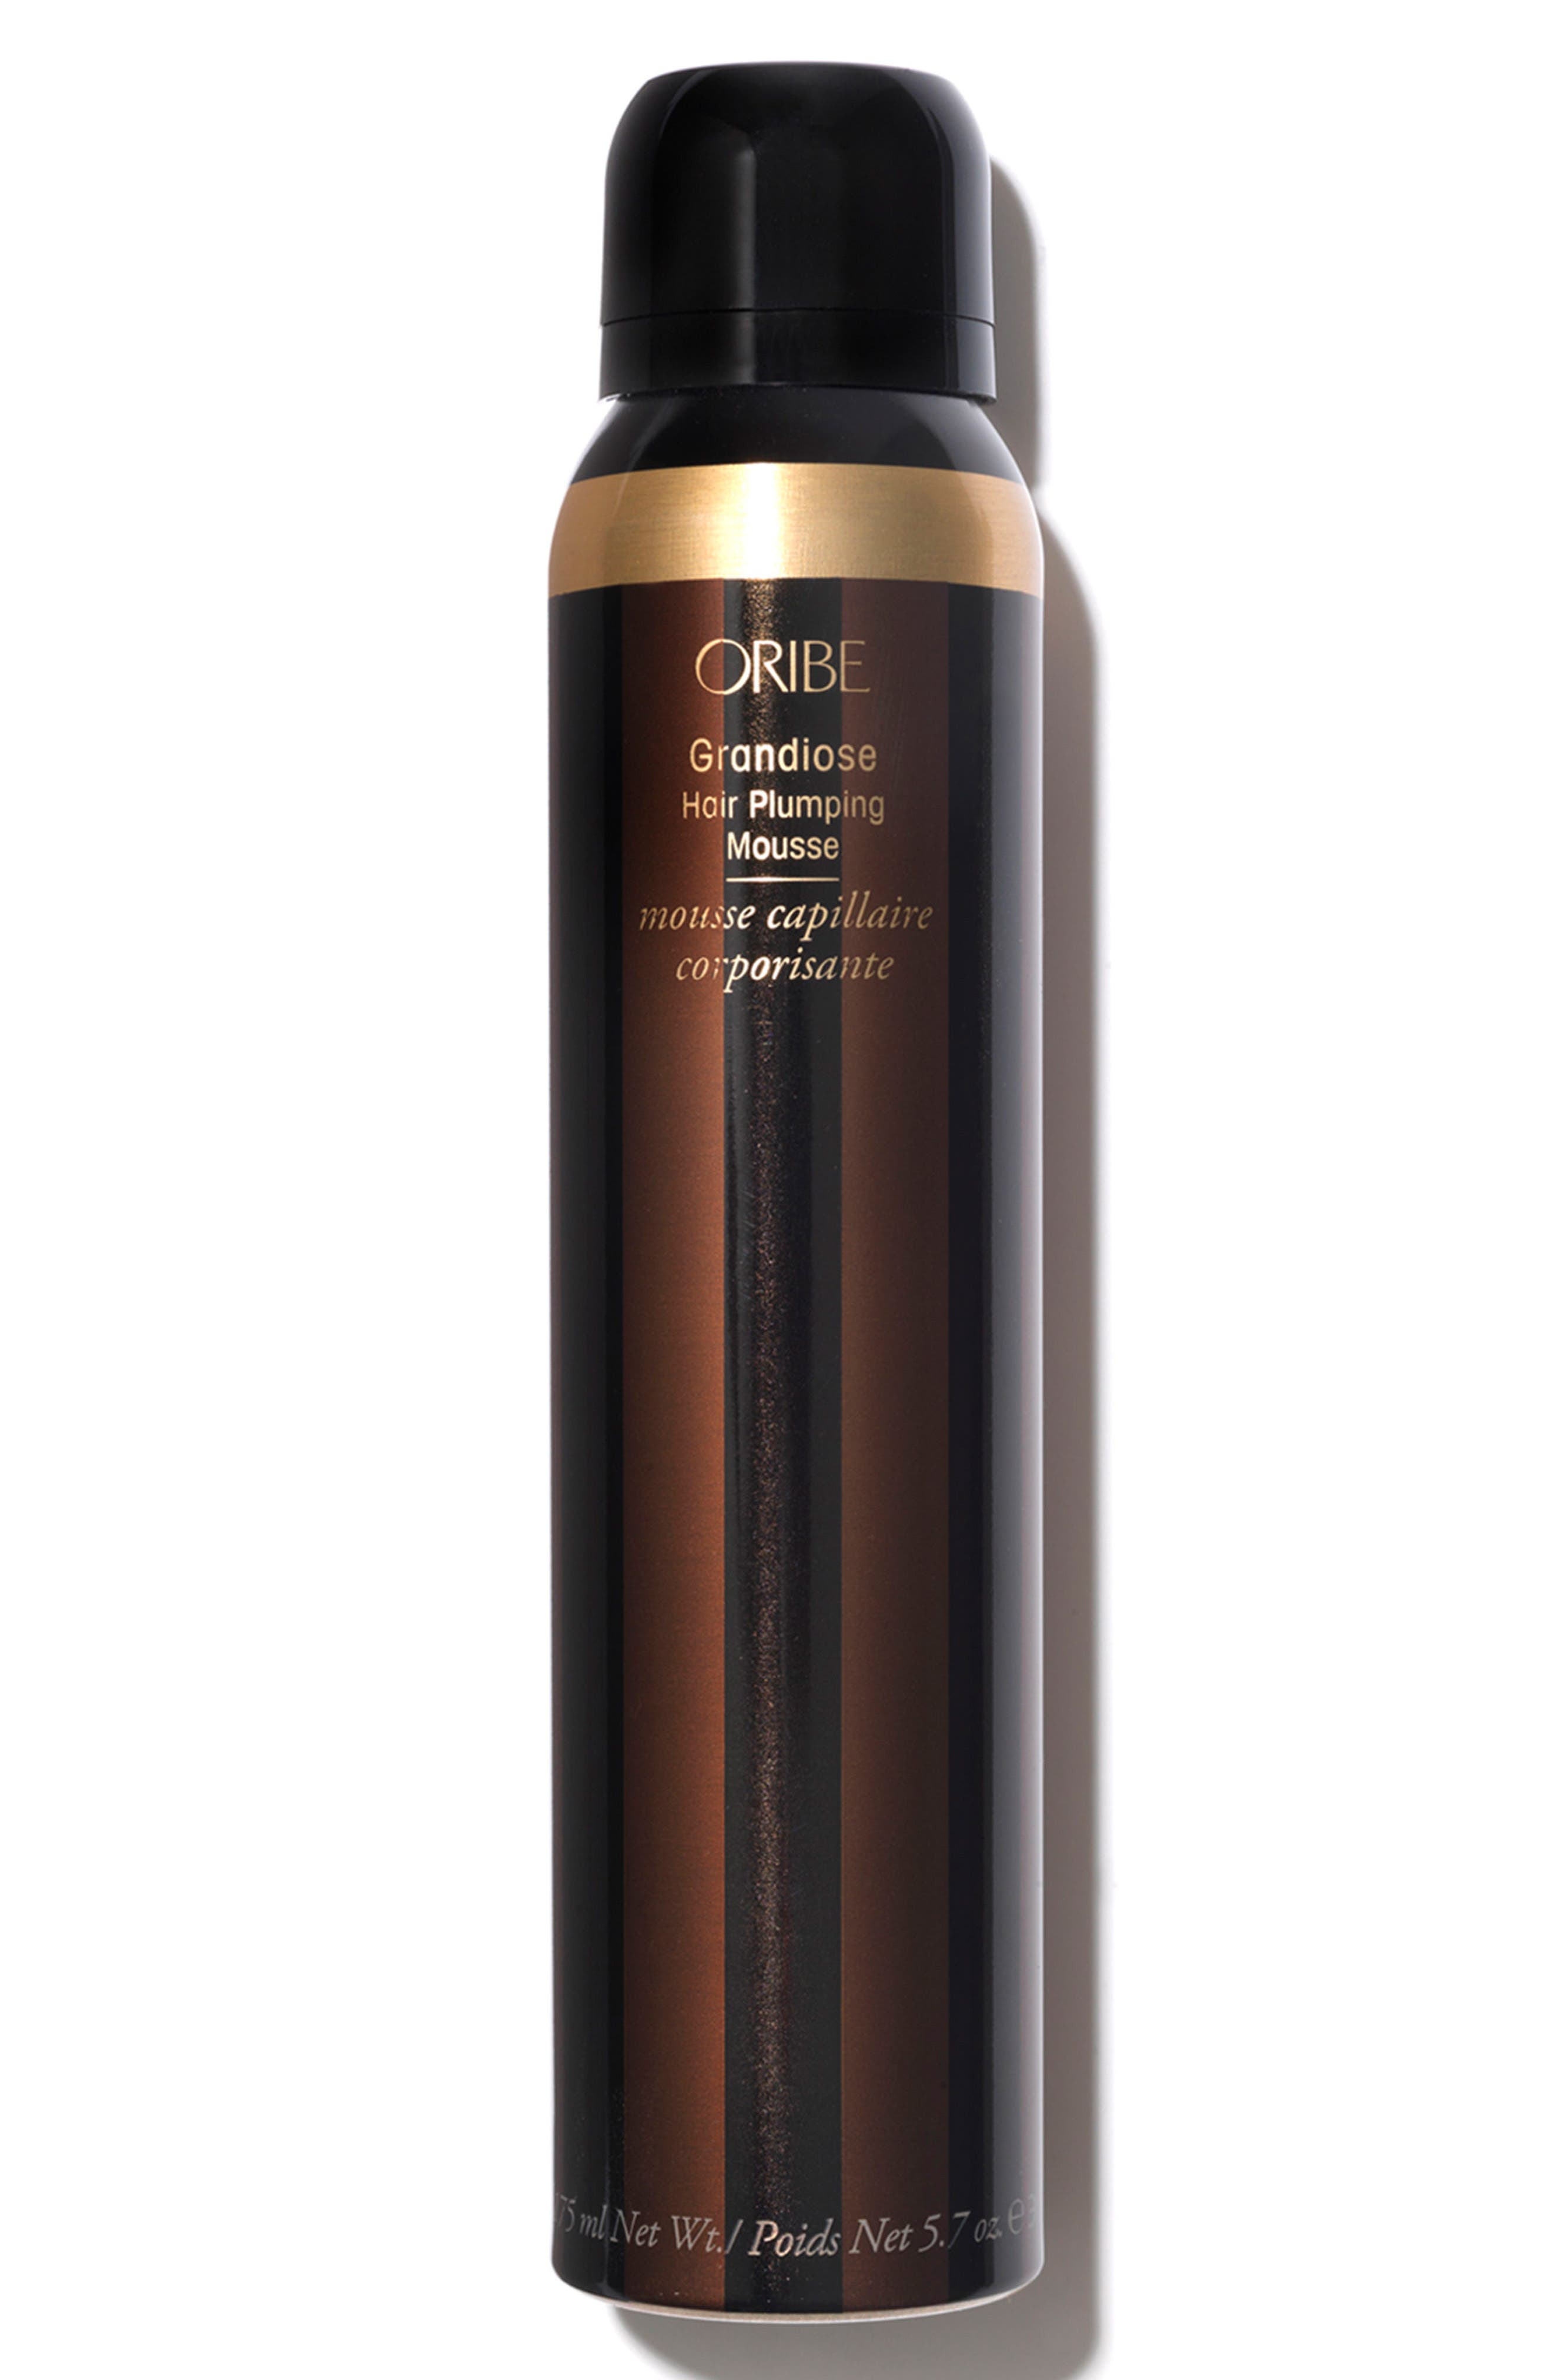 SPACE.NK.apothecary Oribe Grandiose Hair Plumping Mousse